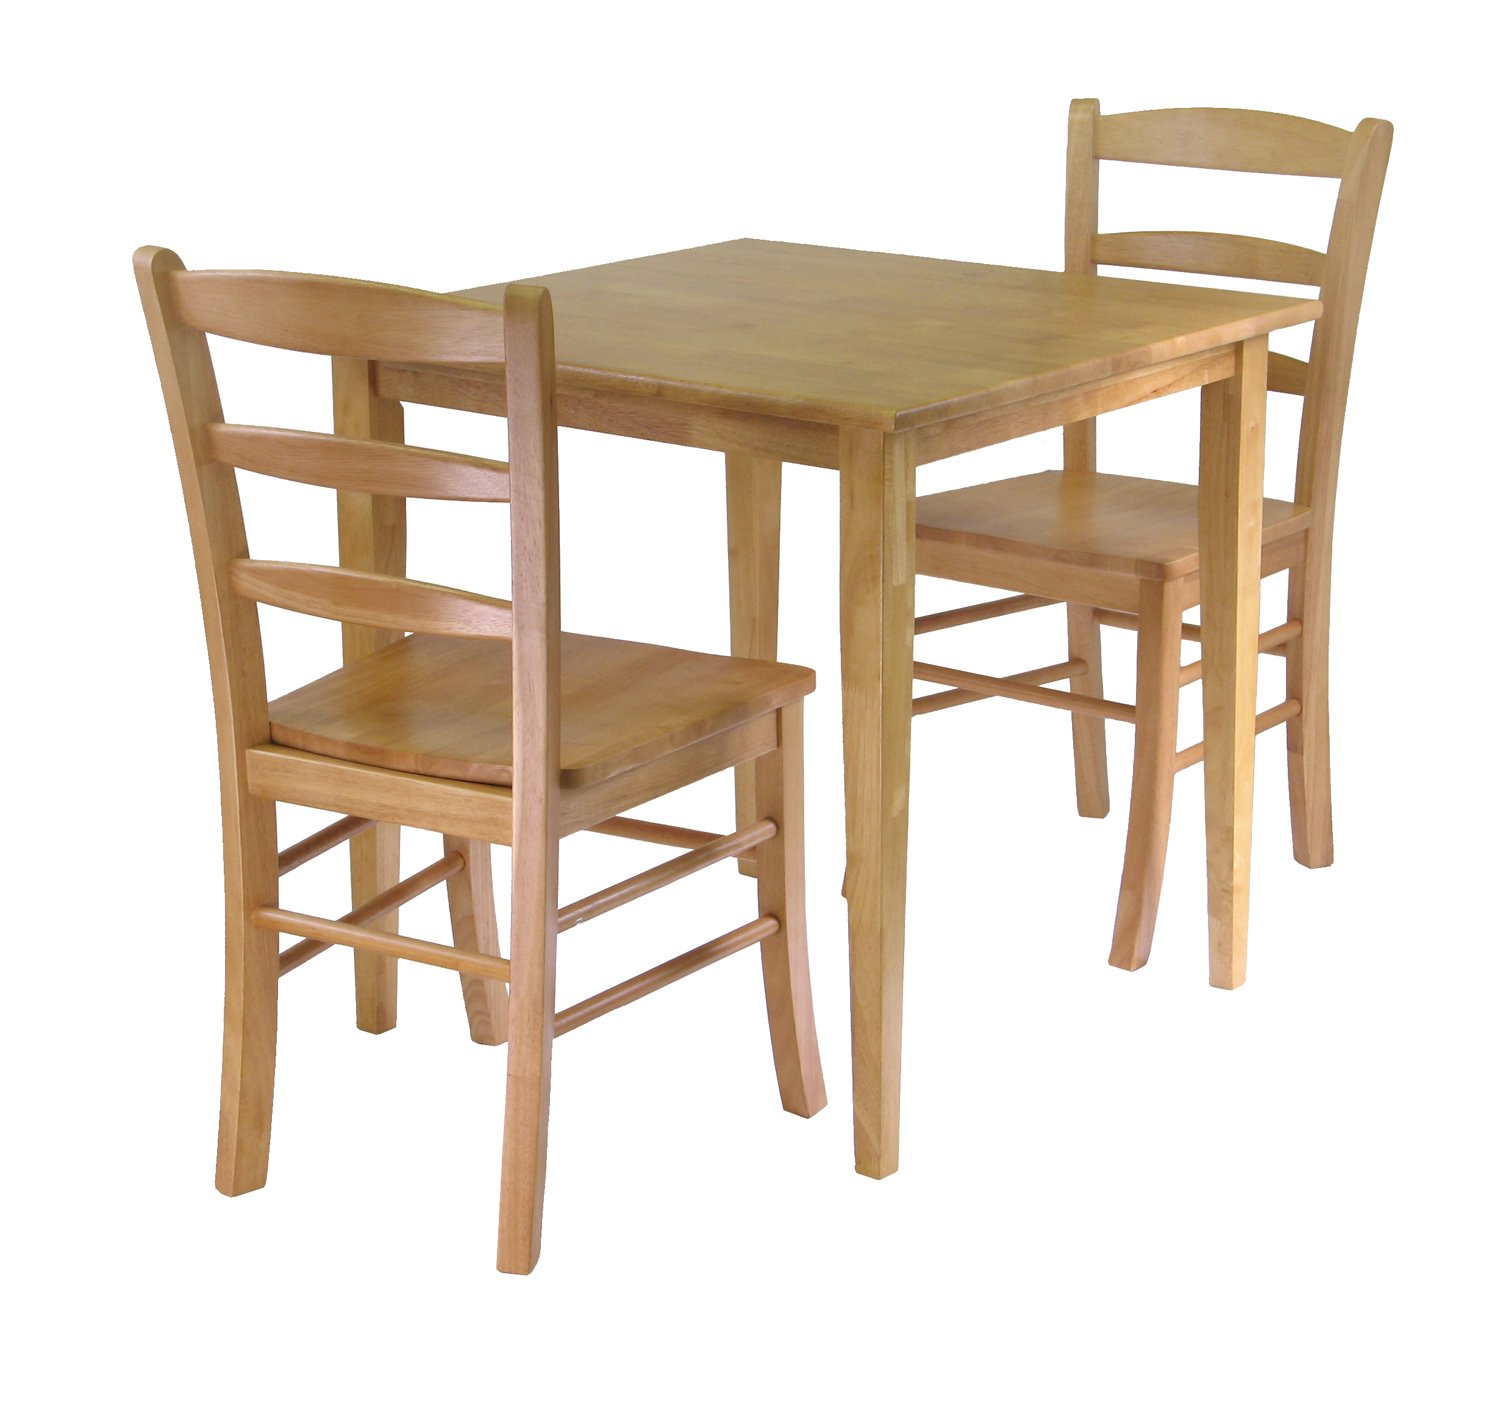 Lovely Dining Table For Two Part - 11: Amazon.com - Winsome Groveland Square Dining Table With 2 Chairs, 3-Piece -  Chairs